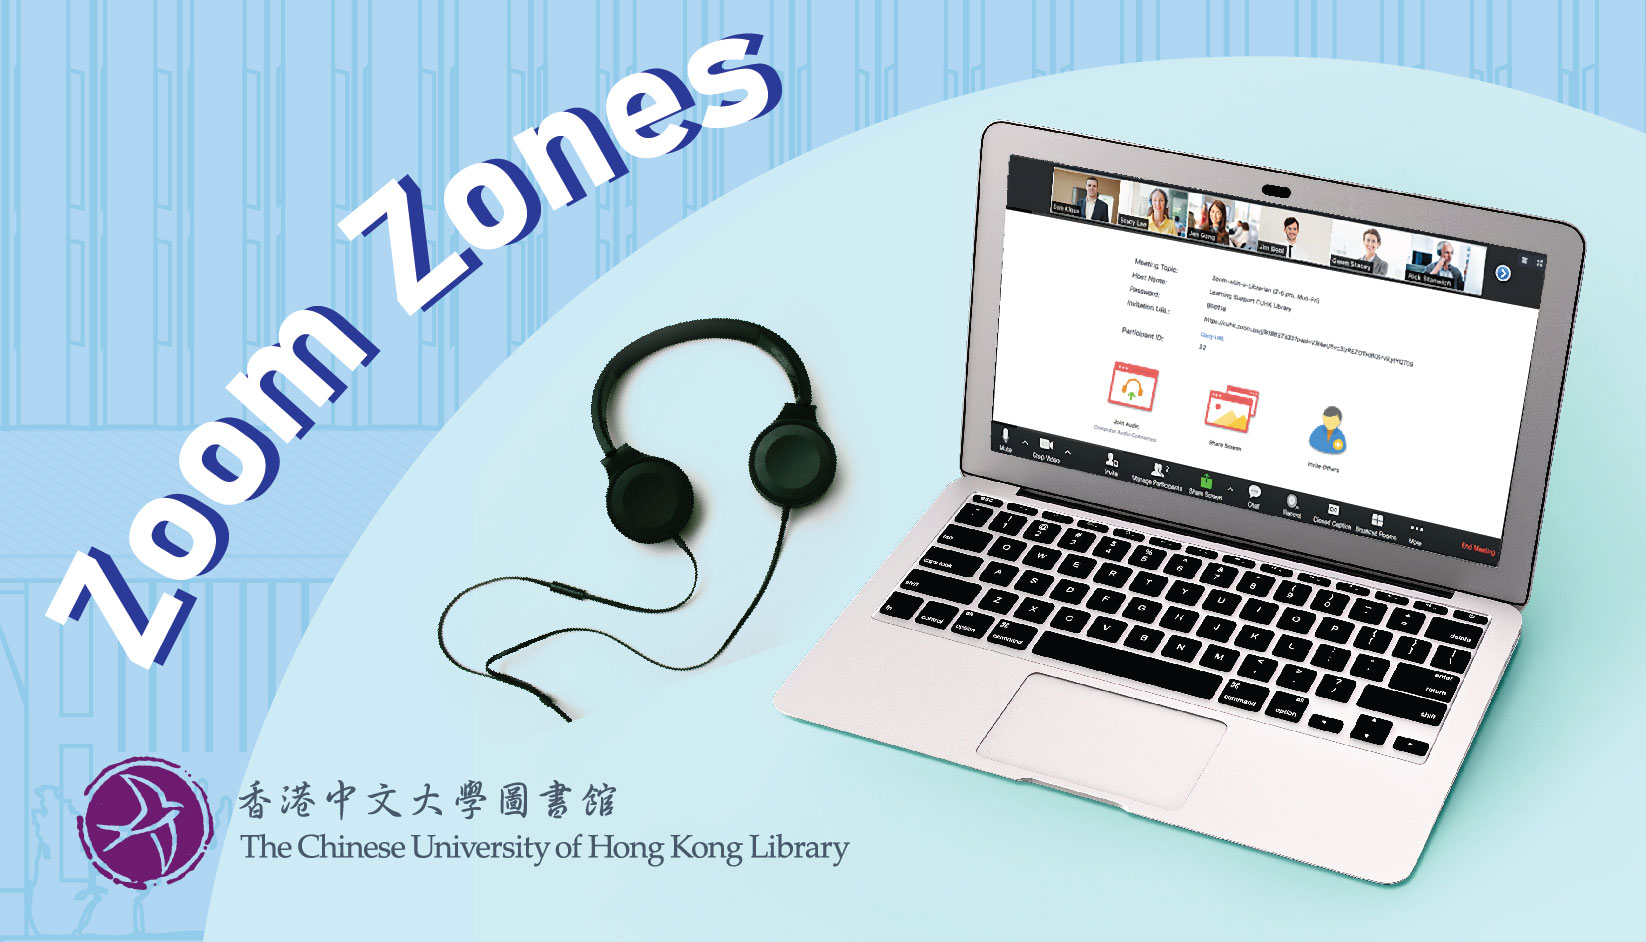 Zoom Zones in the CUHK Library